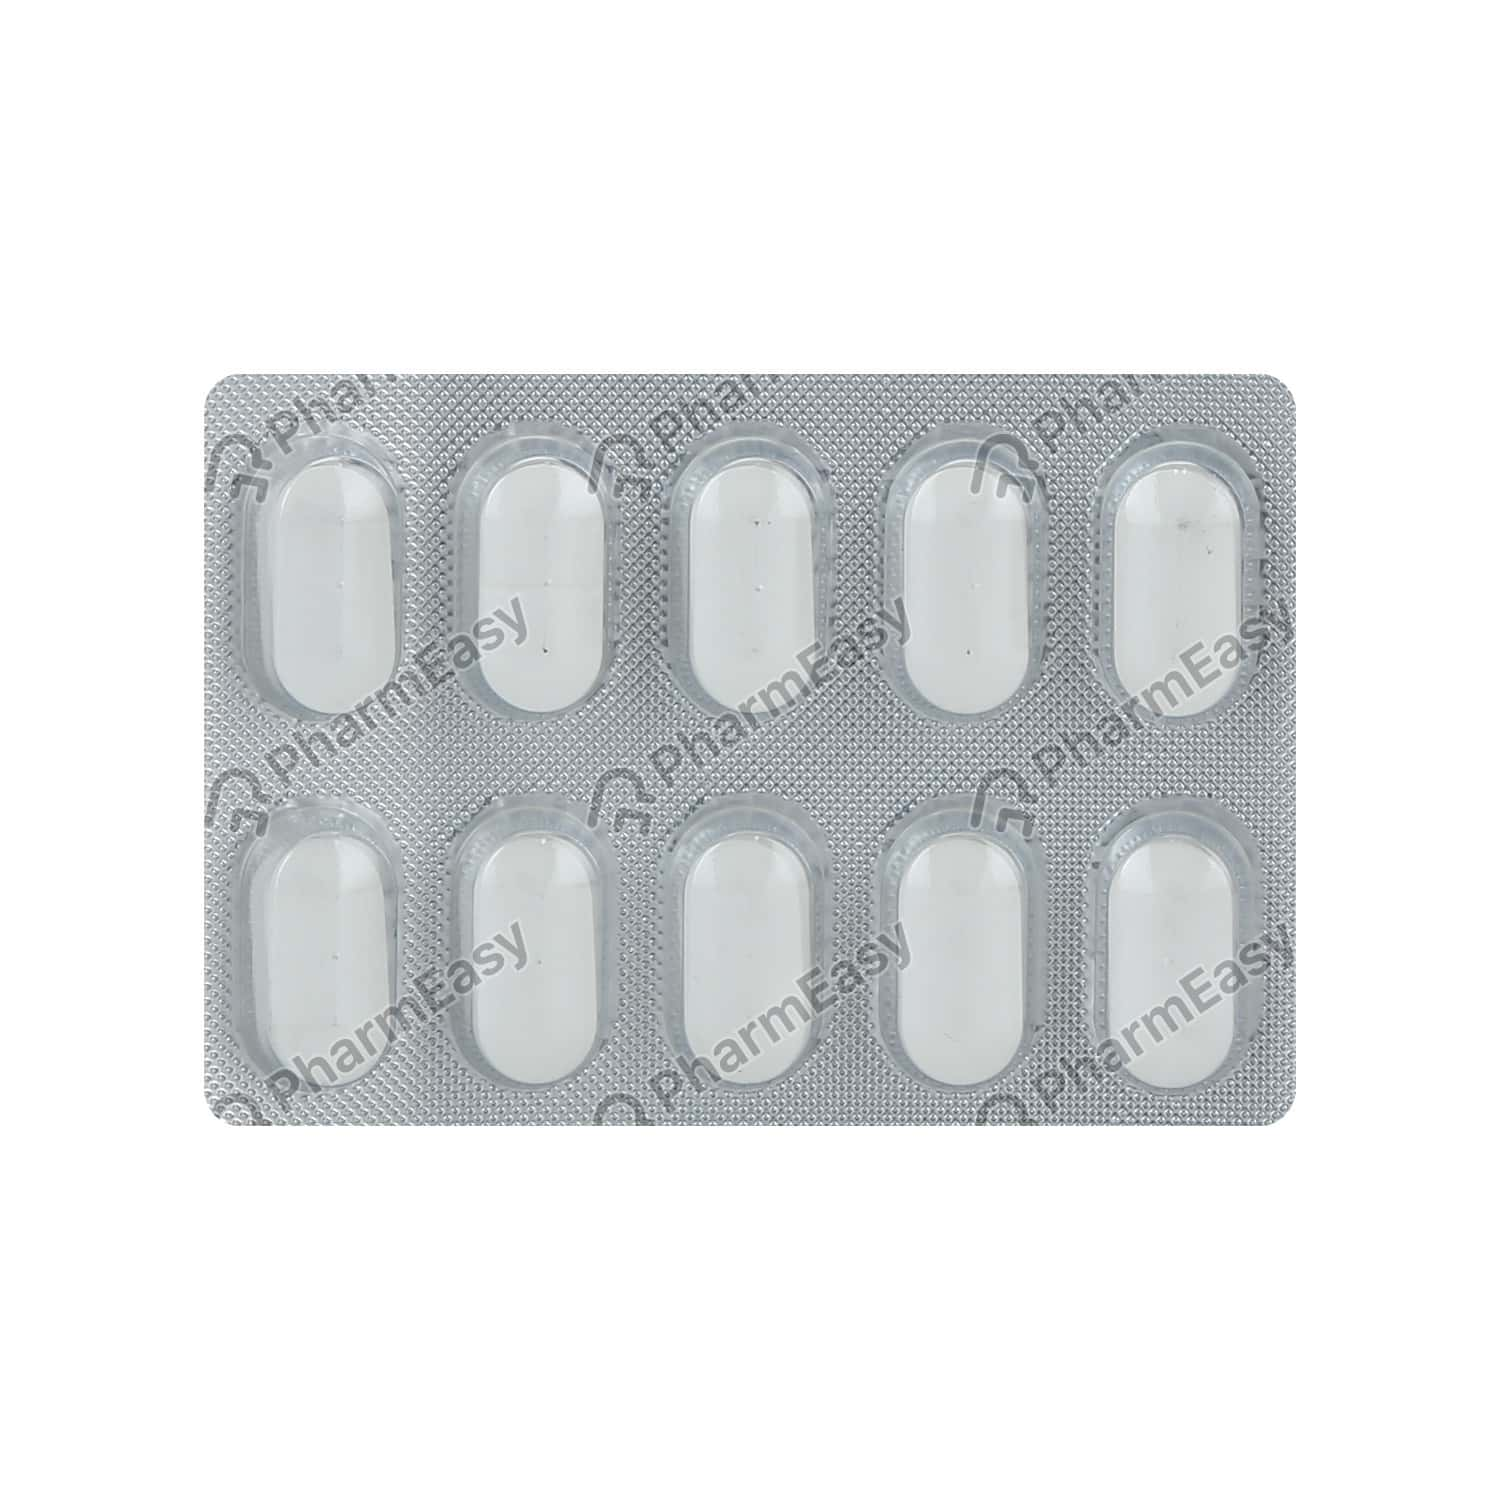 New Triclazone 80mg Strip Of 10 Tablets